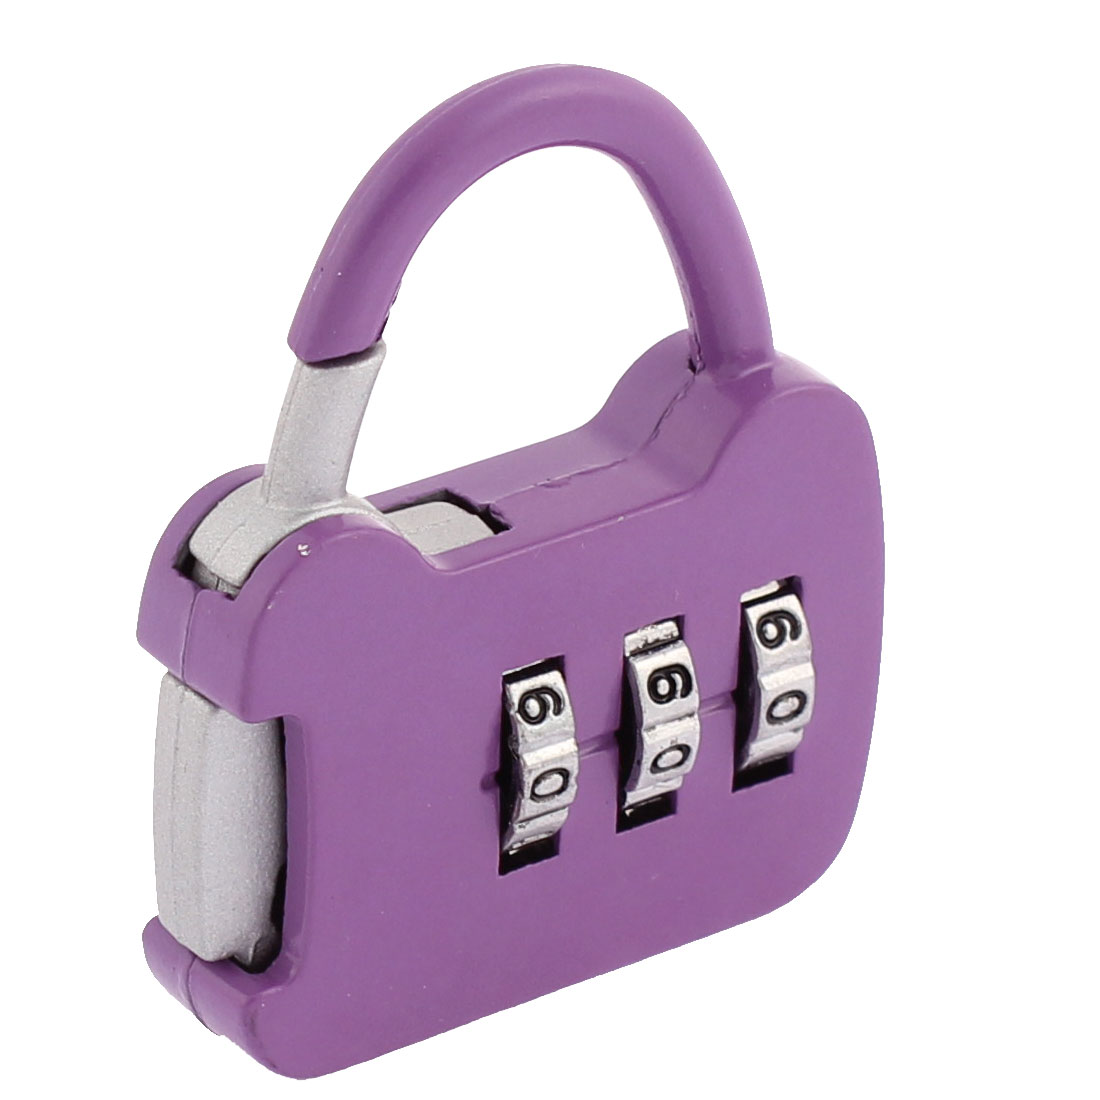 Luggage Suitcase Handbag Drawer 3 Digits Metal Password Padlock Purple